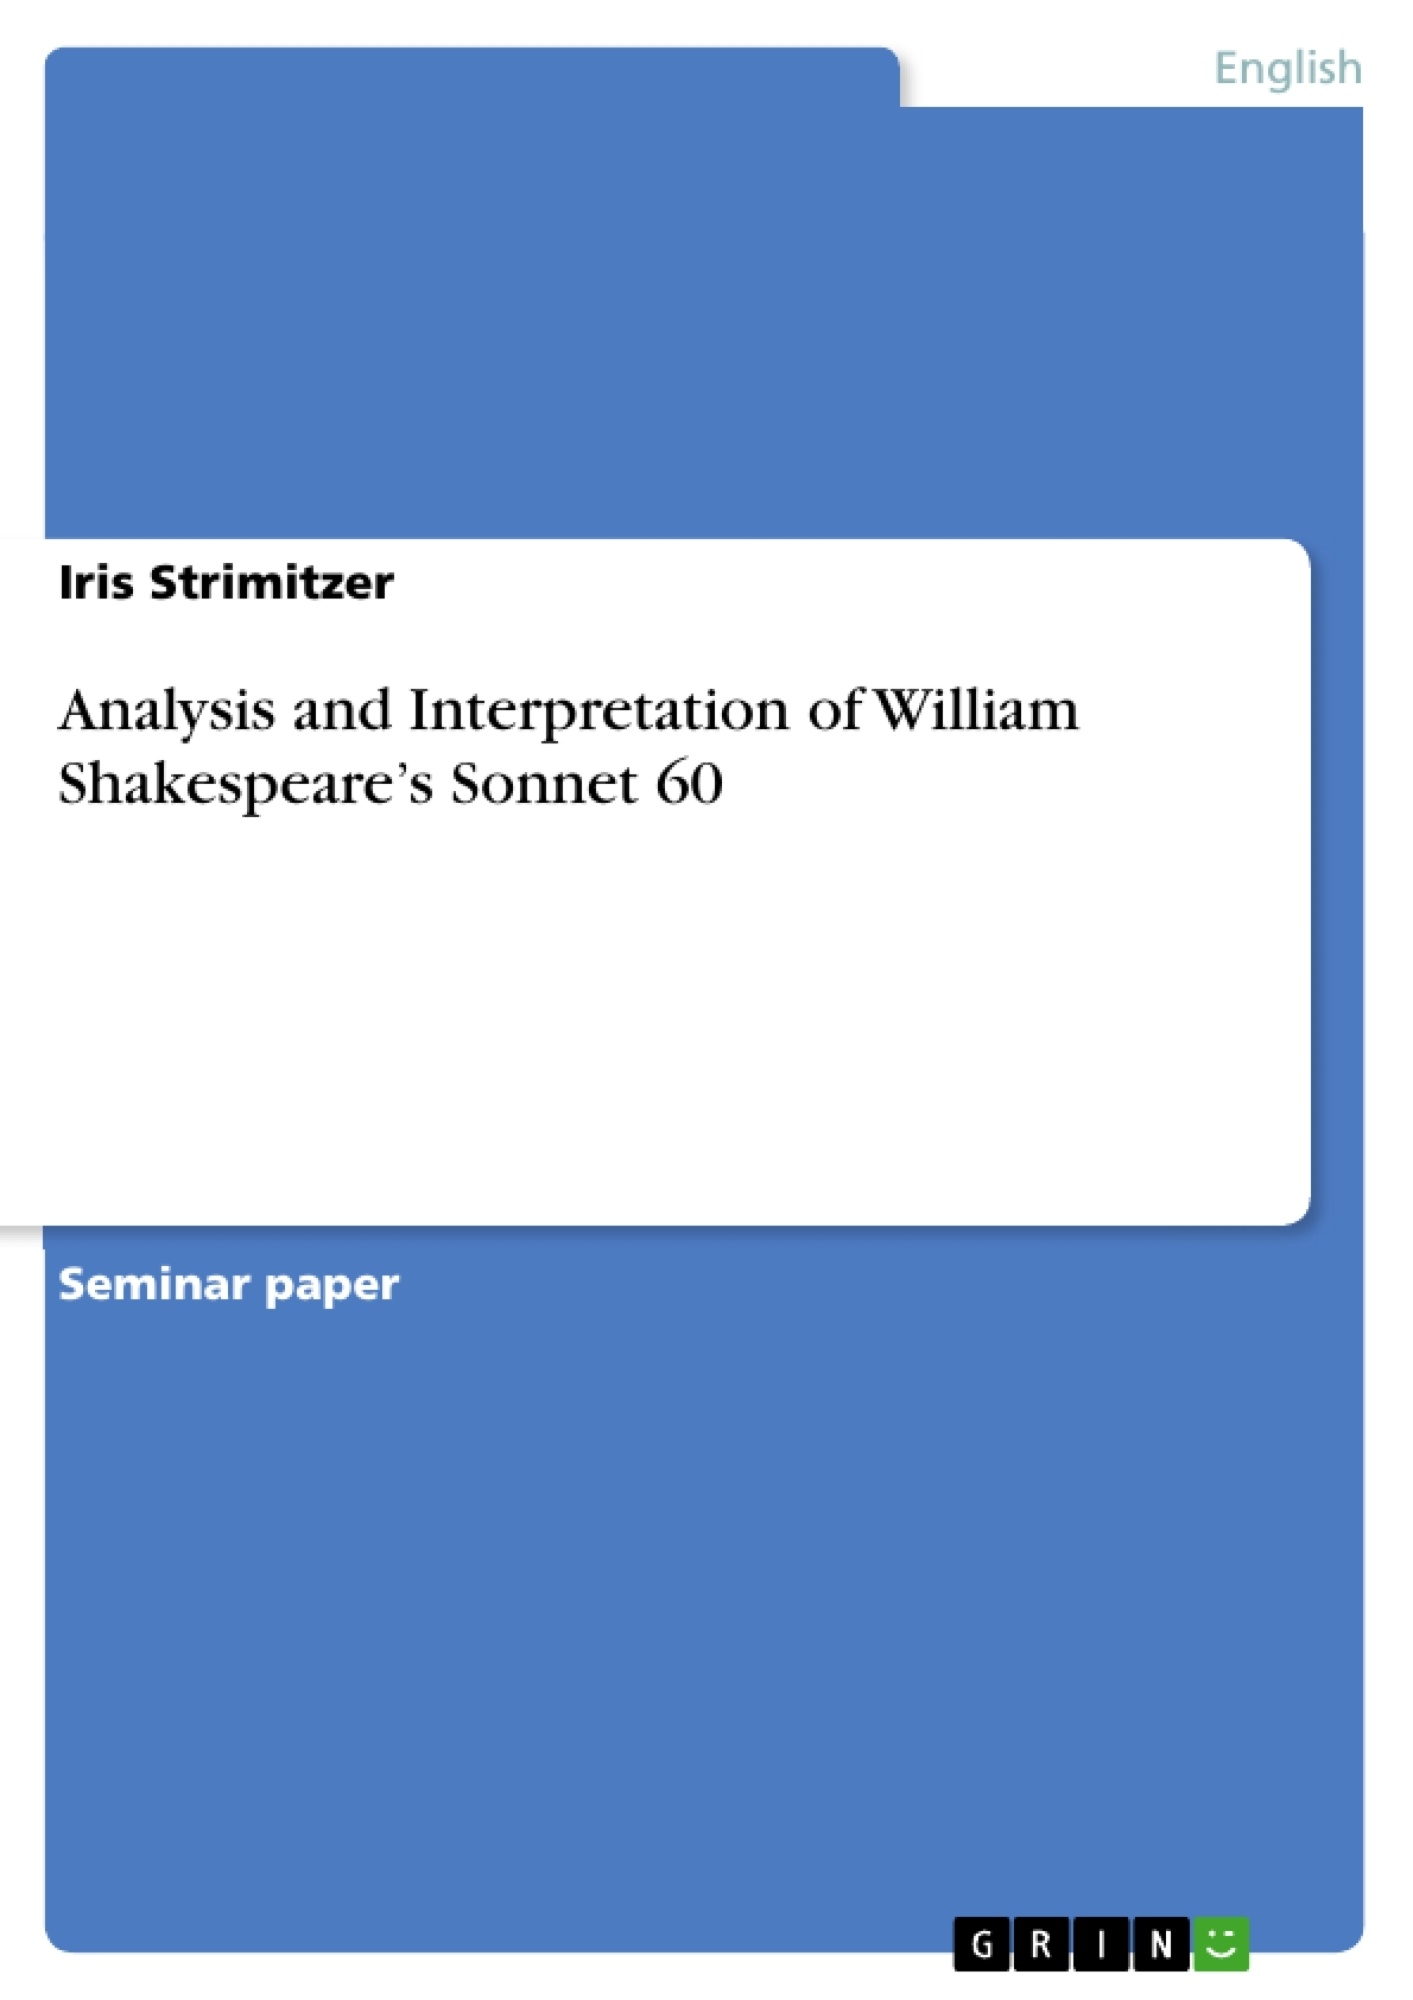 Title: Analysis and Interpretation of William Shakespeare's Sonnet 60